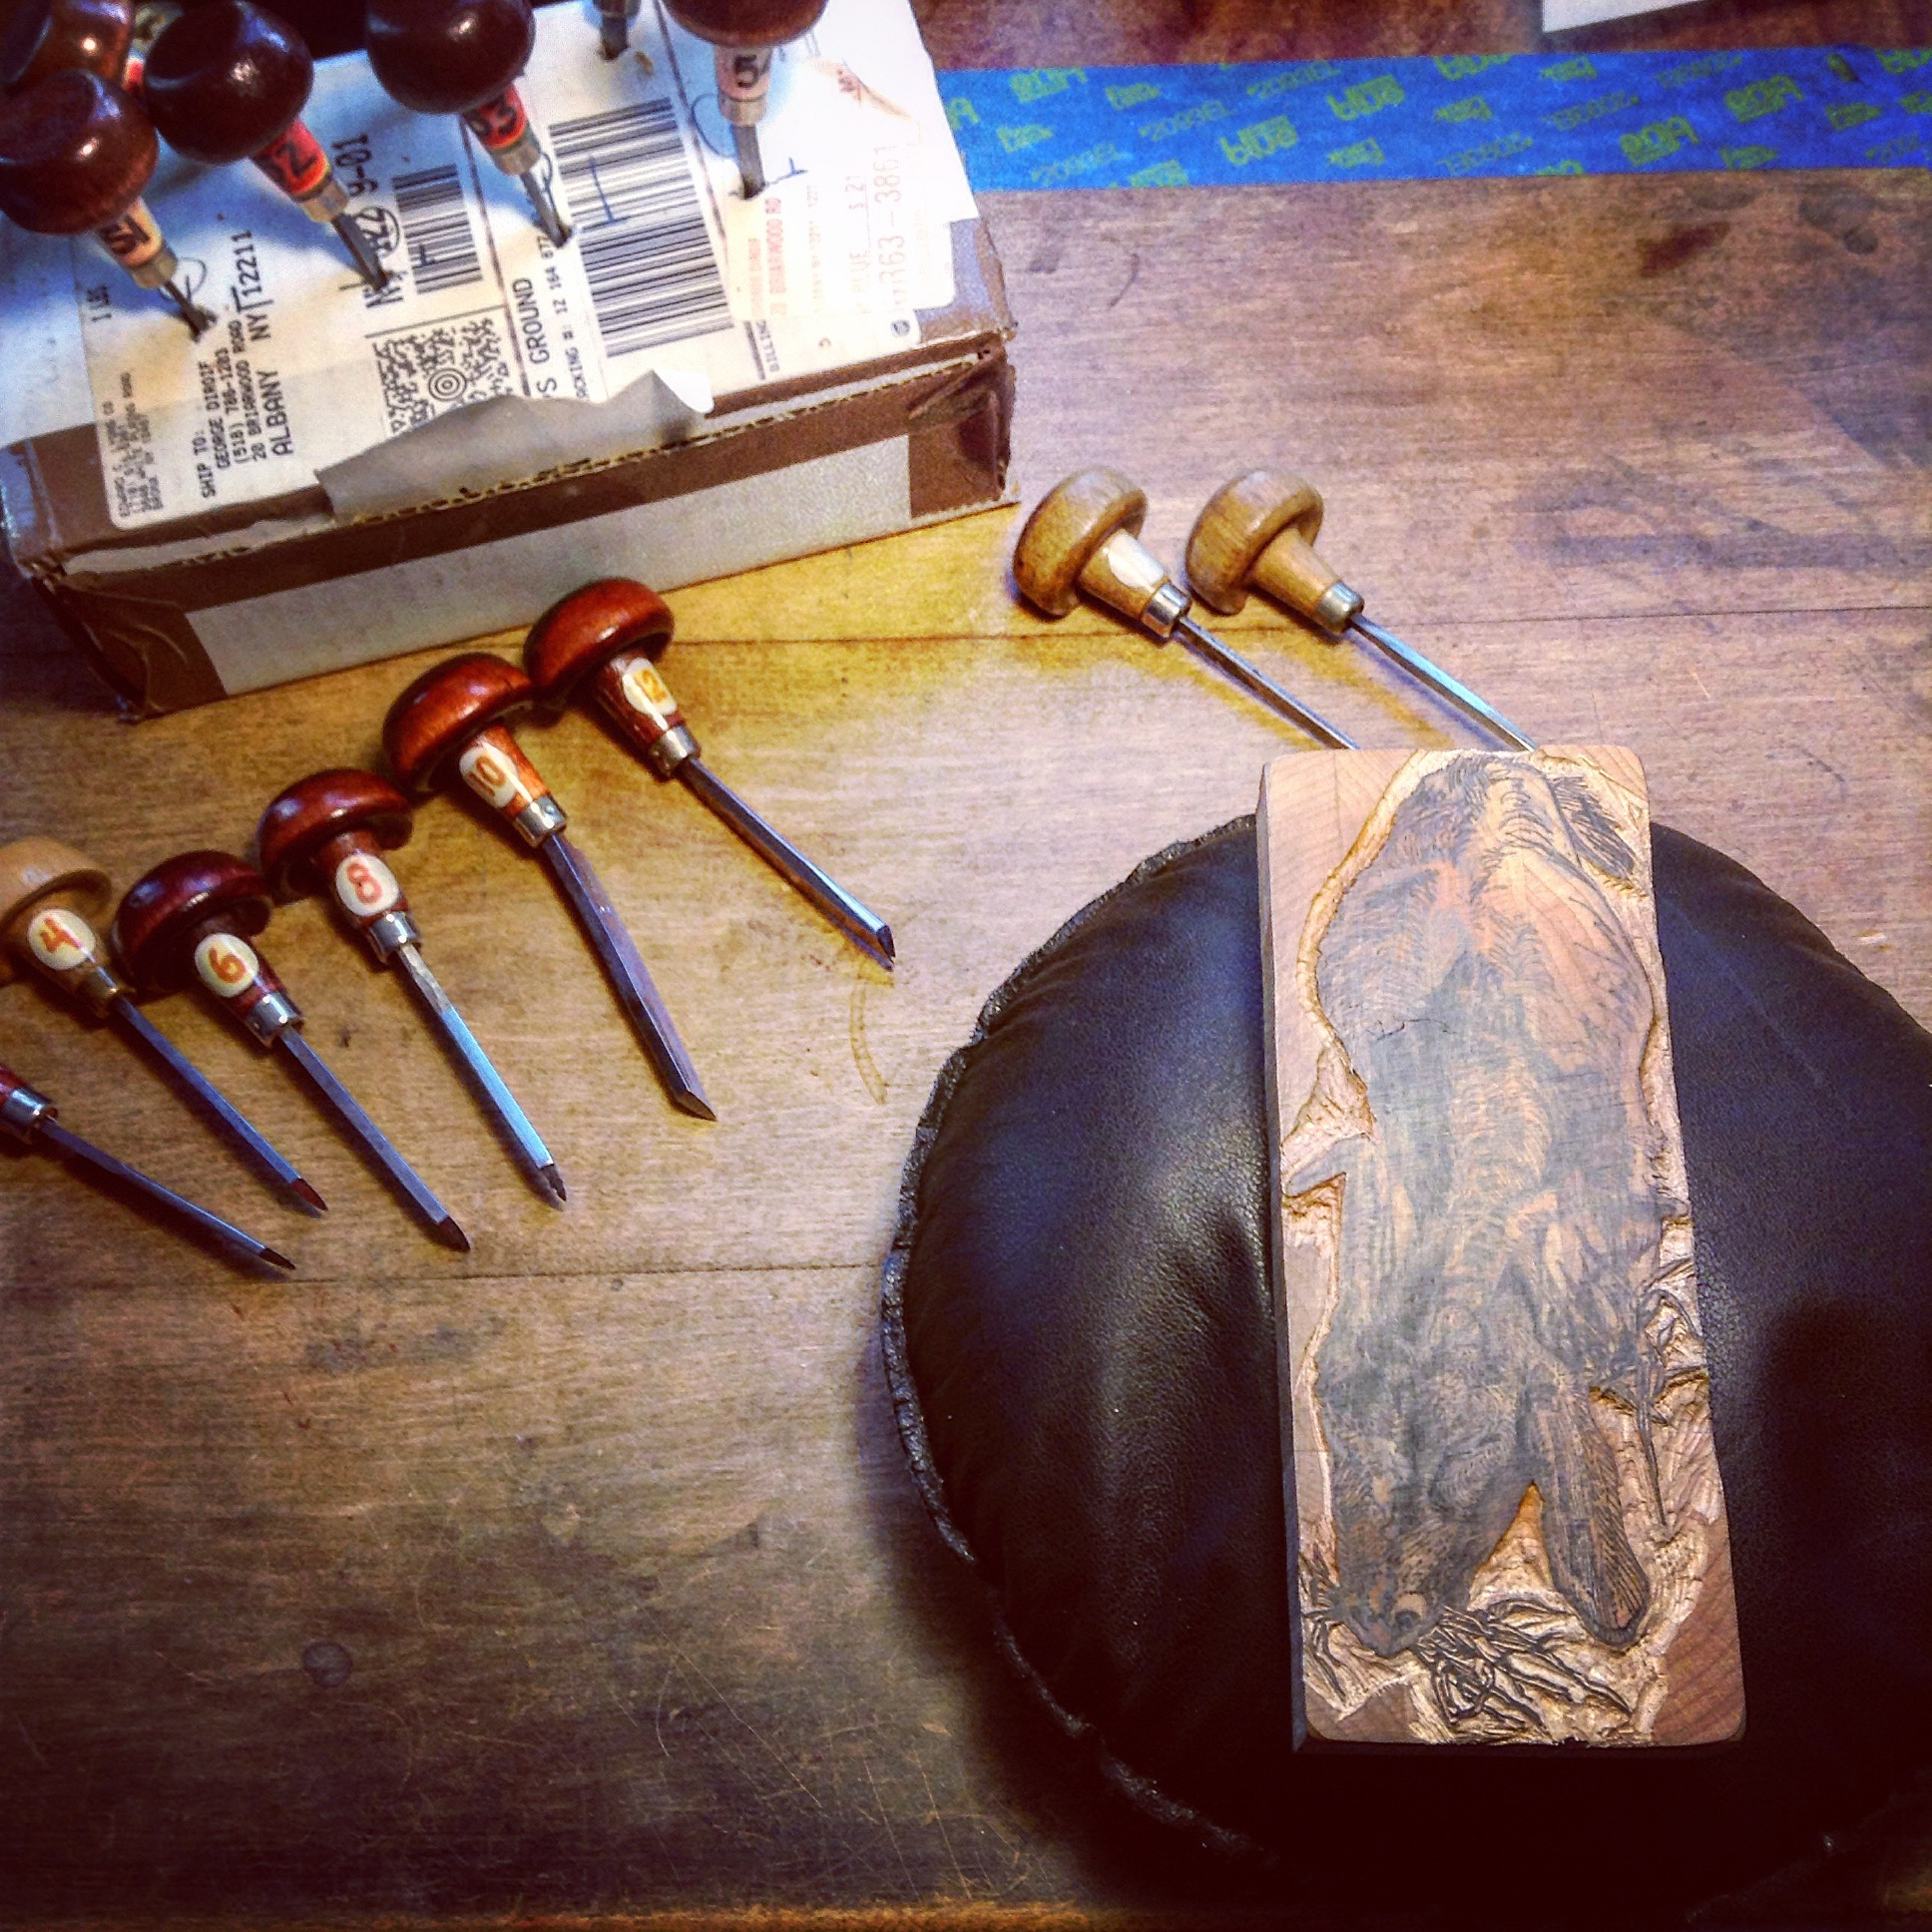 Cutting block, engraving tools, and leather engraving pad